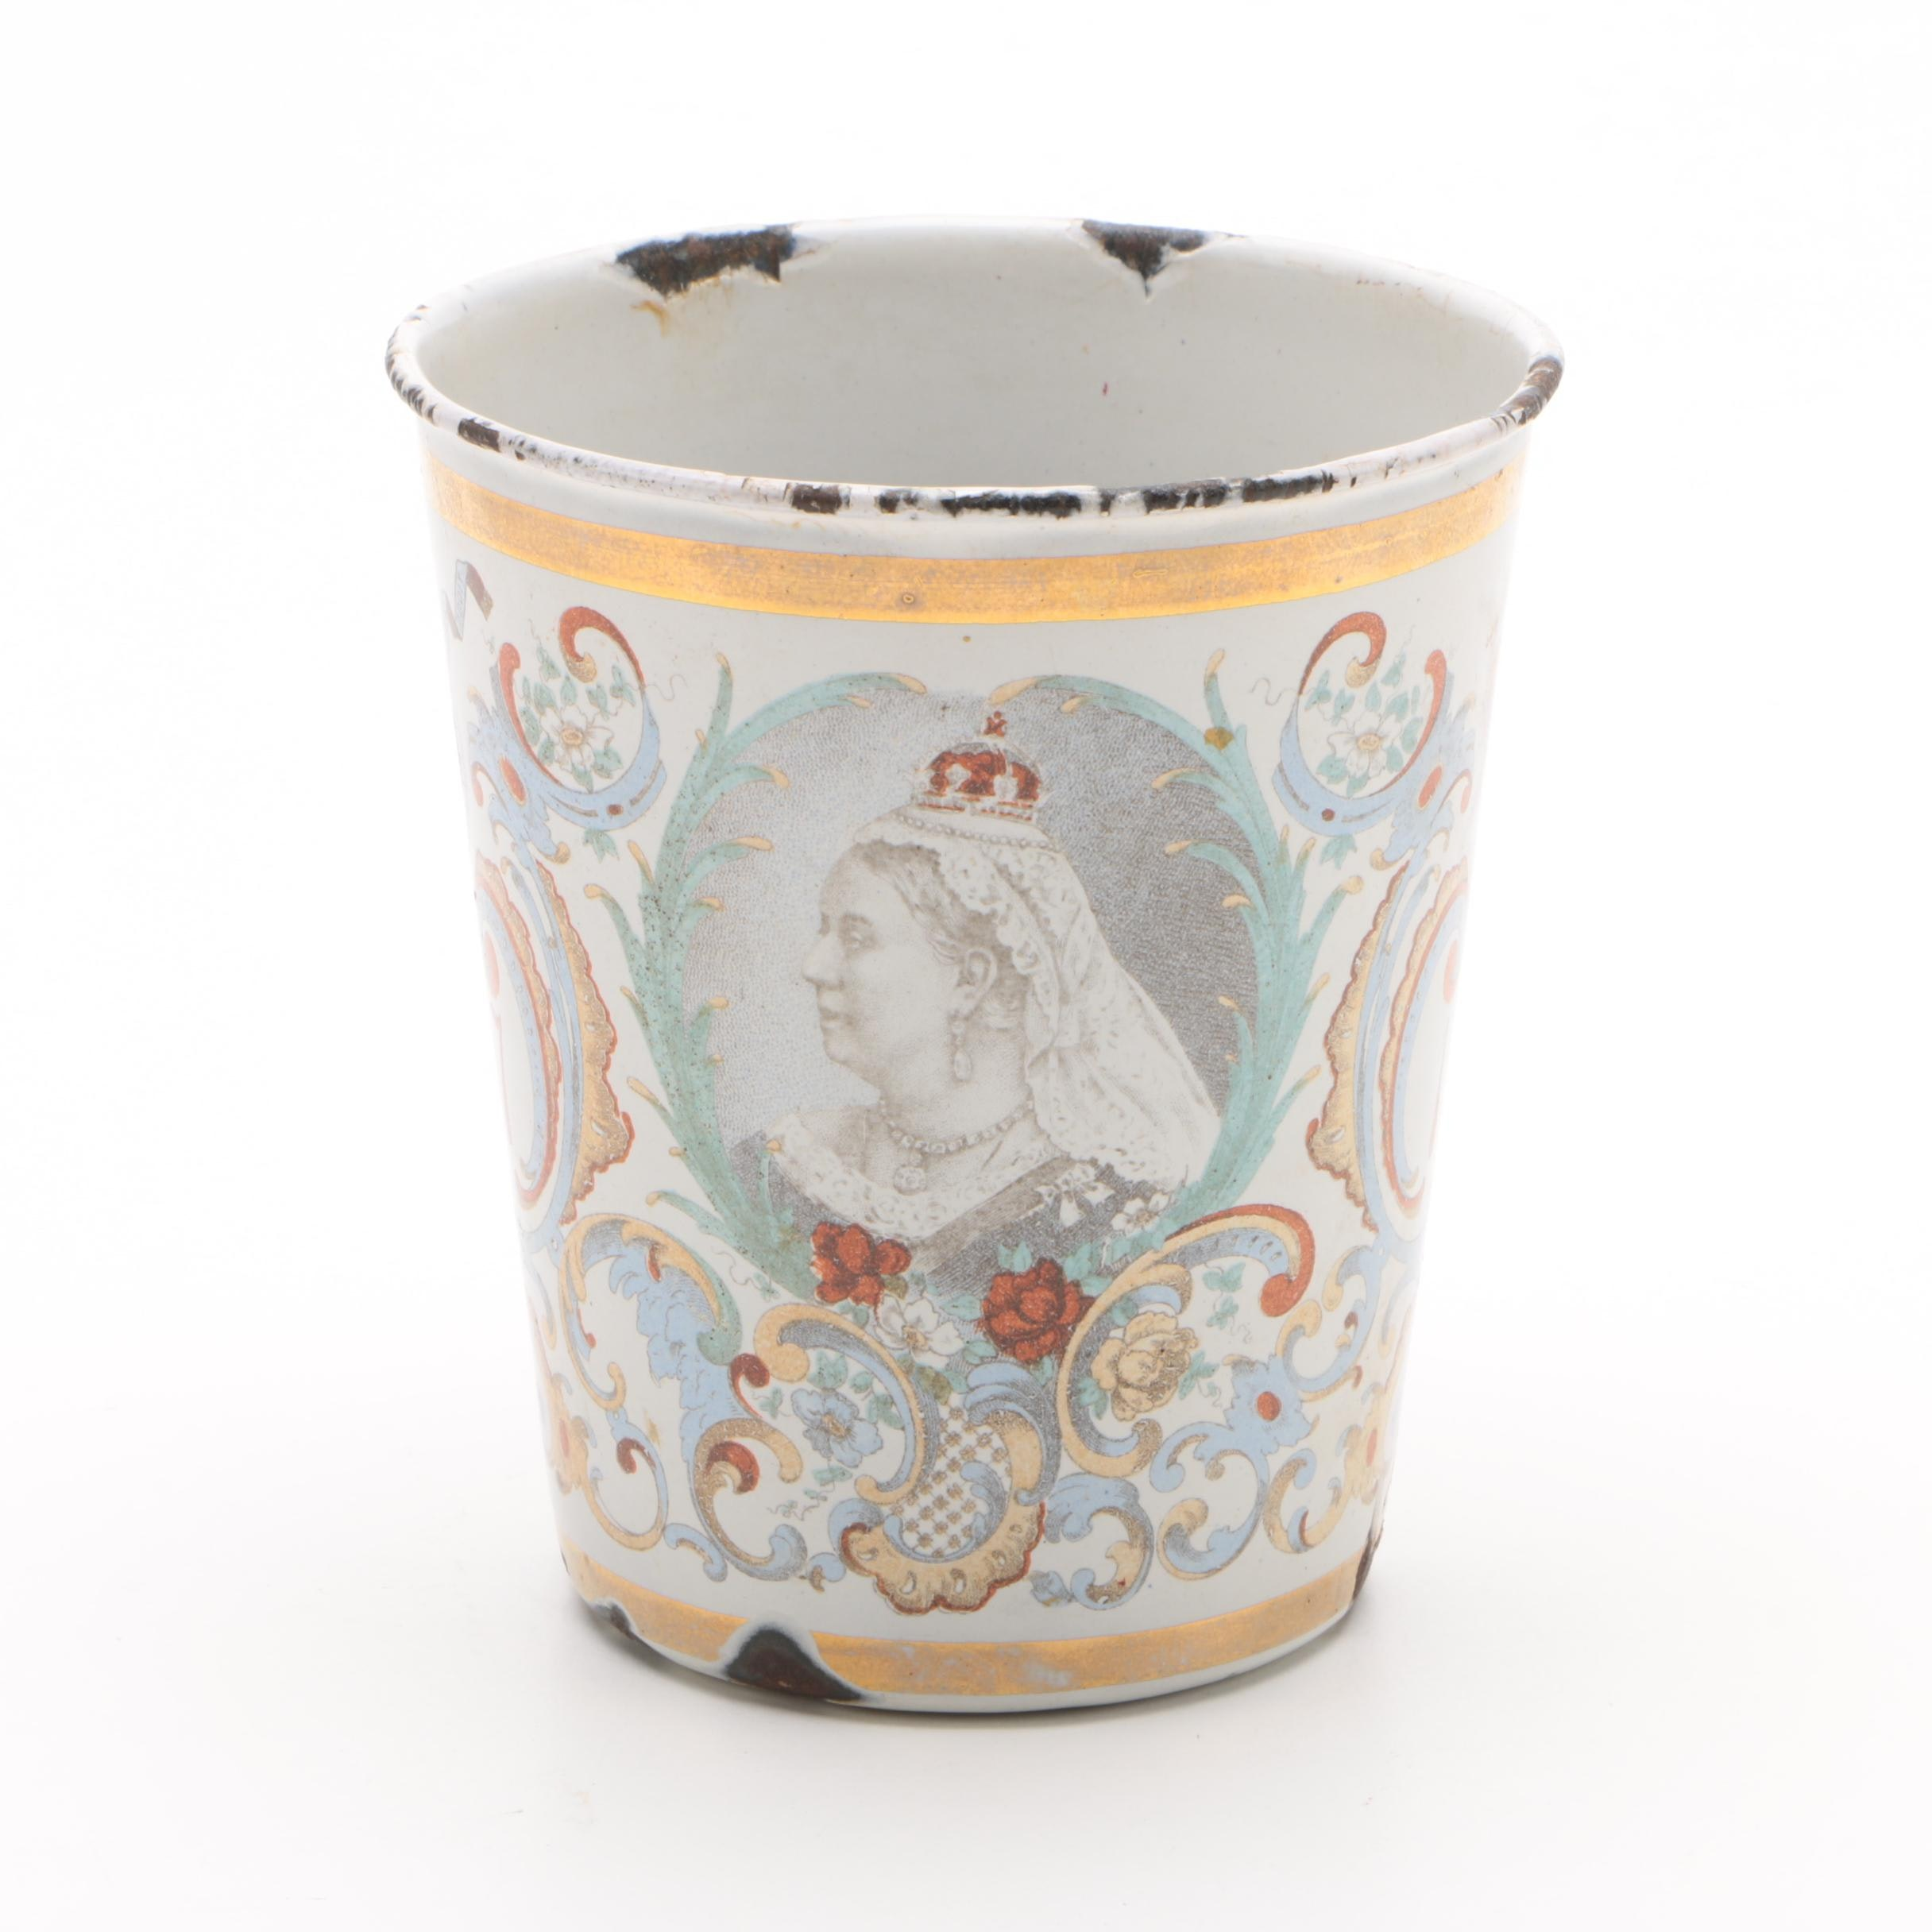 Antique Queen Victoria Diamond Jubilee Enameled Cup